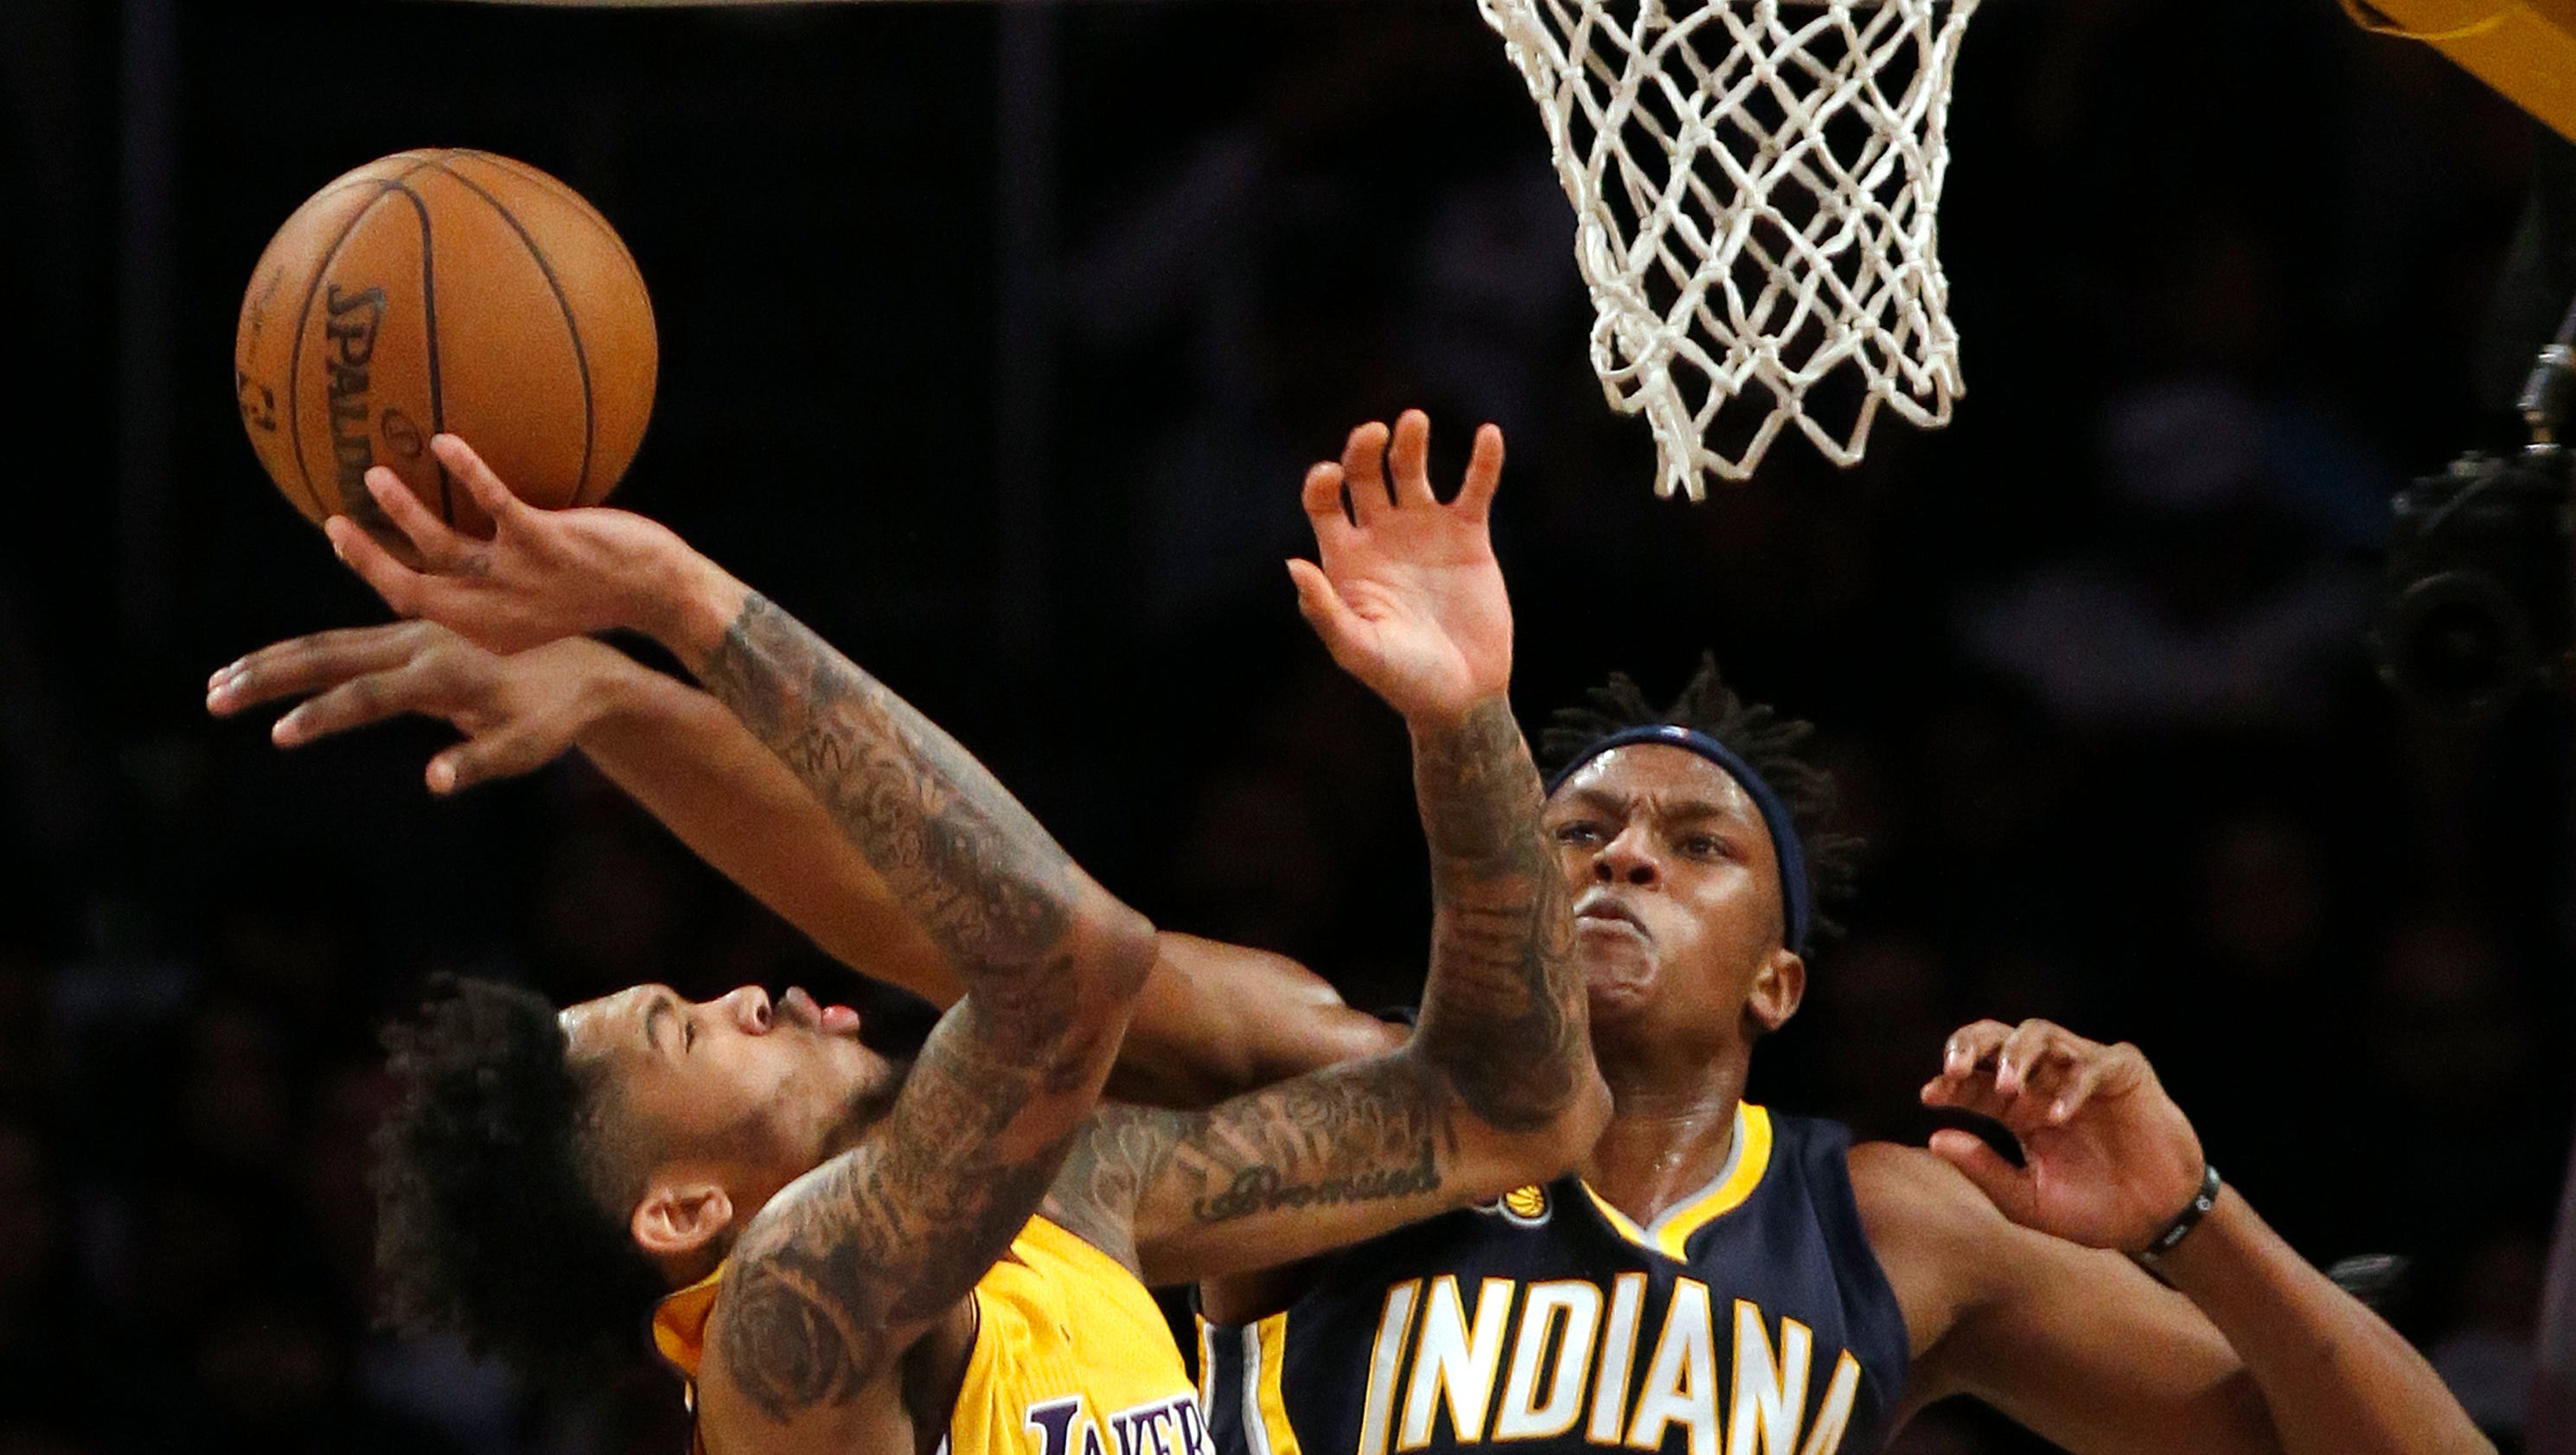 636205554127166504-pacers-lakers-basketball-jayello-hnenewspapers.com-1